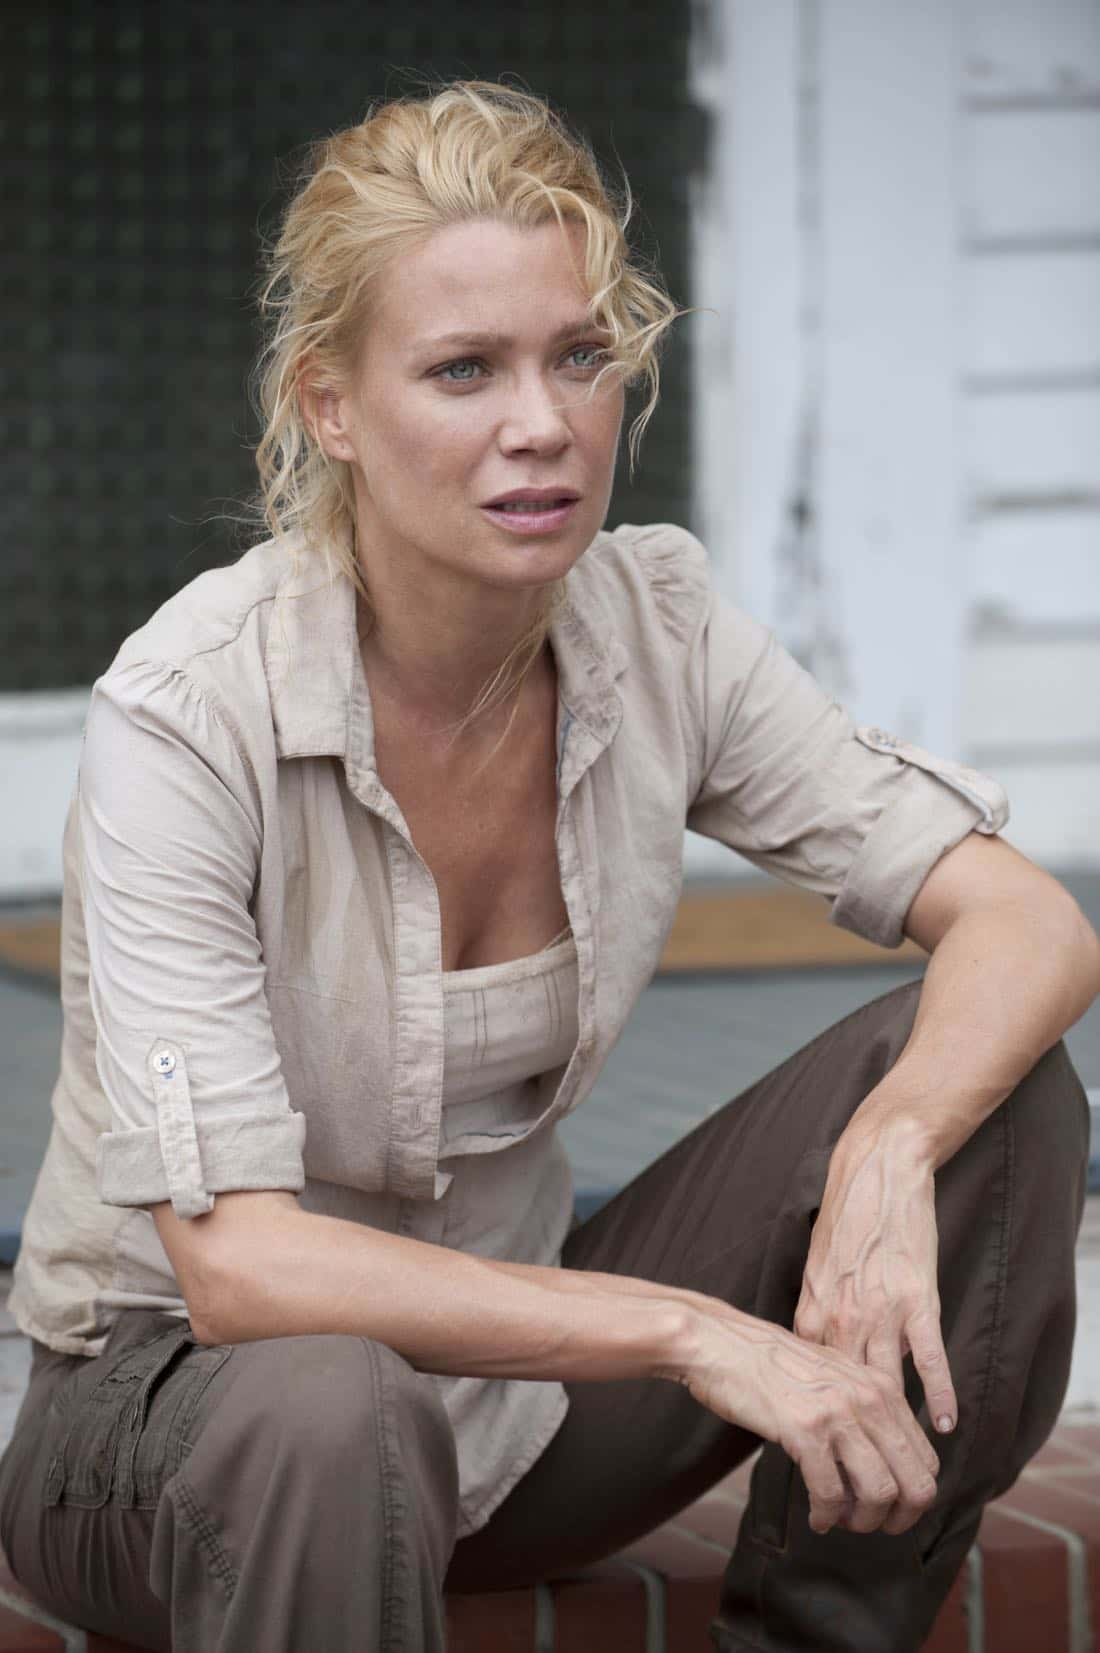 Andrea (Laurie Holden) - The Walking Dead - Season 2, Episode 5